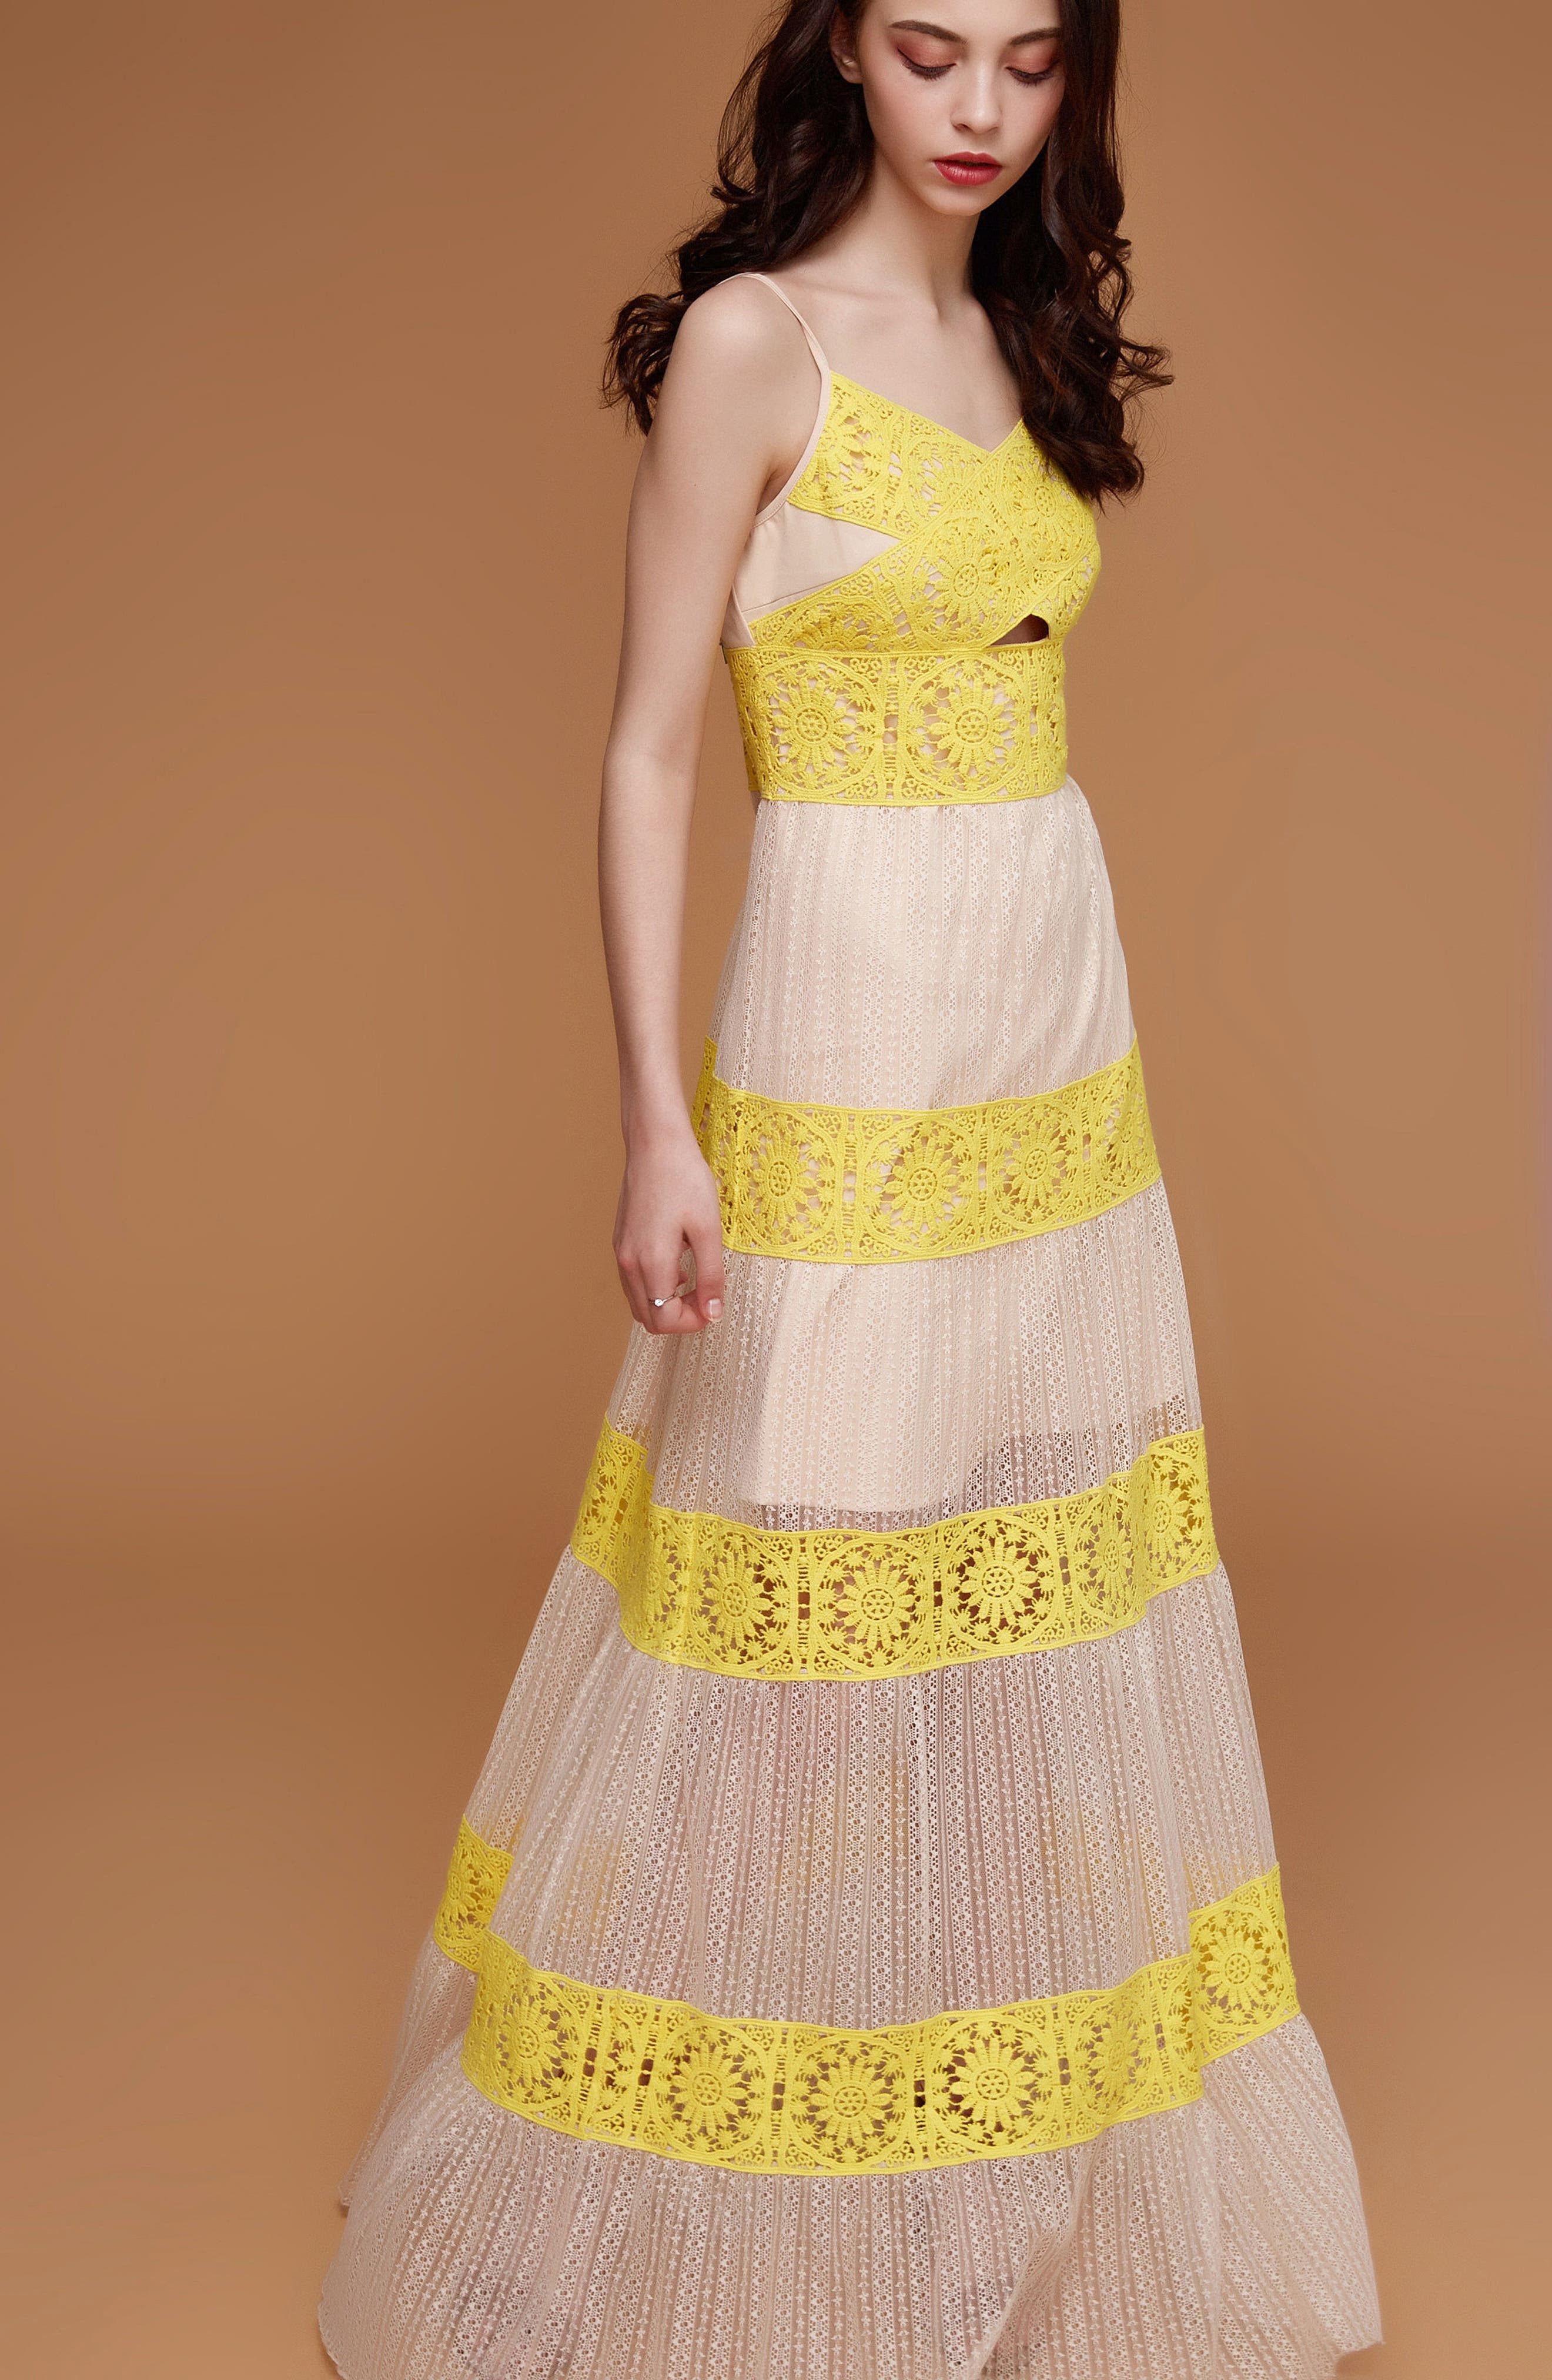 Mia Two-Tone Lace Gown,                             Alternate thumbnail 8, color,                             YELLOW/ NUDE